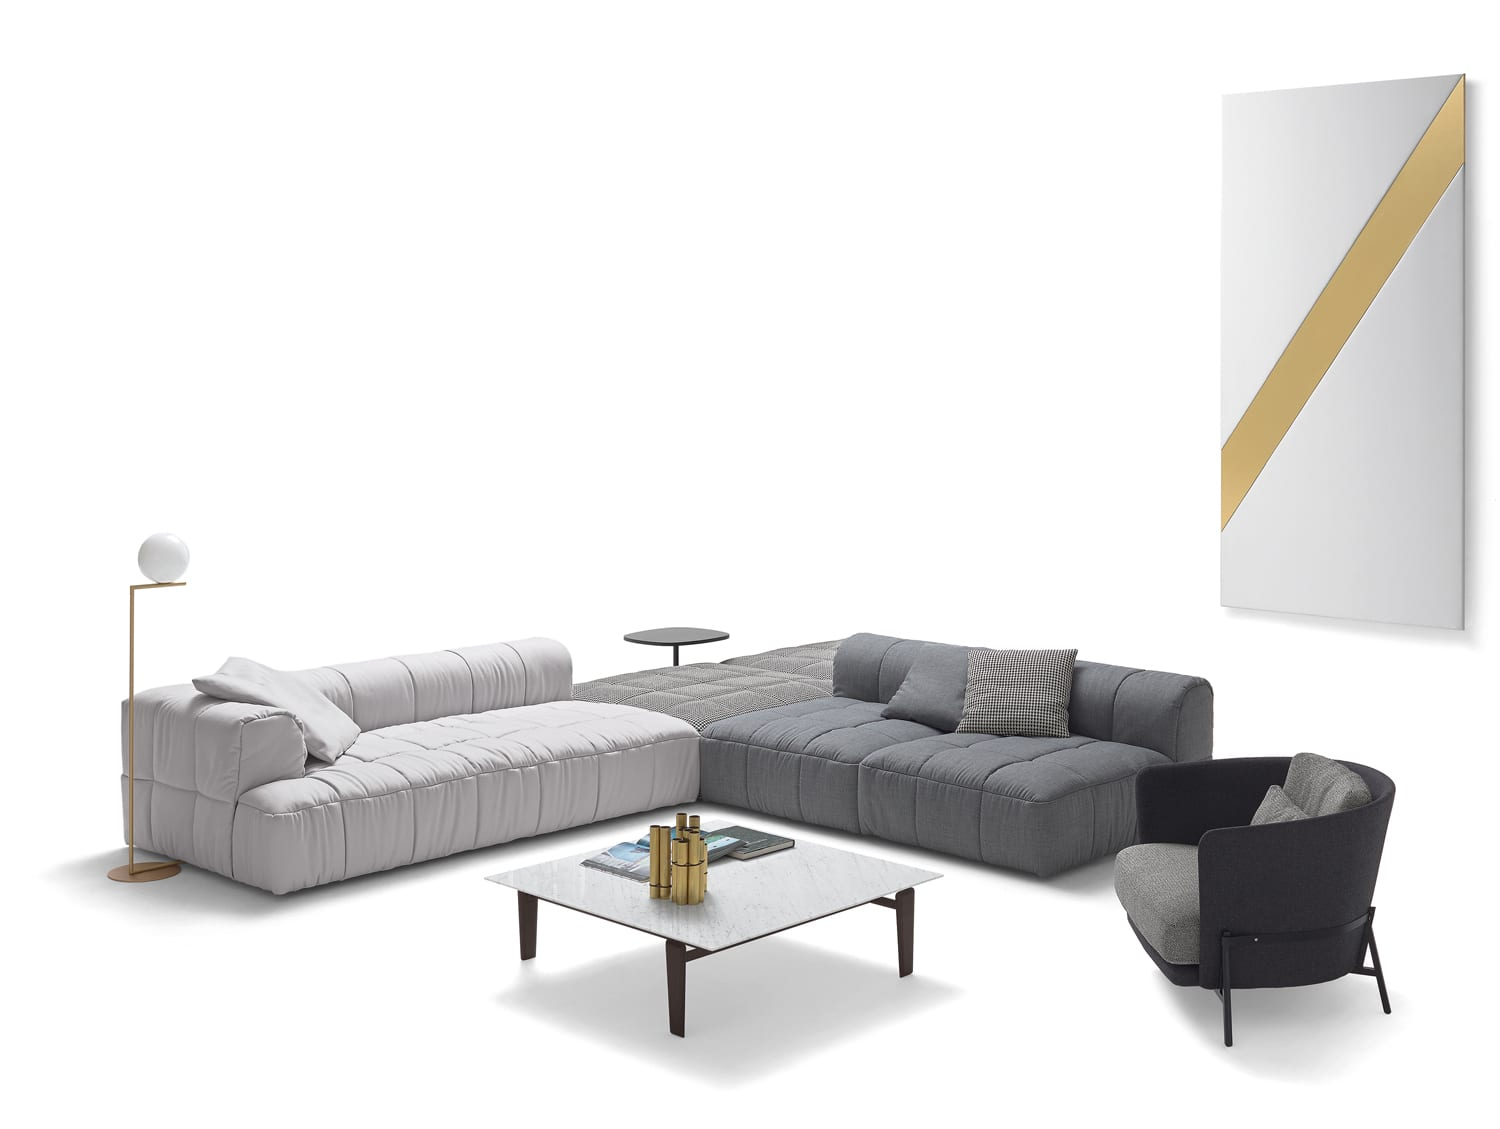 Strips Sofa by Cini Boeri for Arflex at IMM Cologne 2018   Yellowtrace